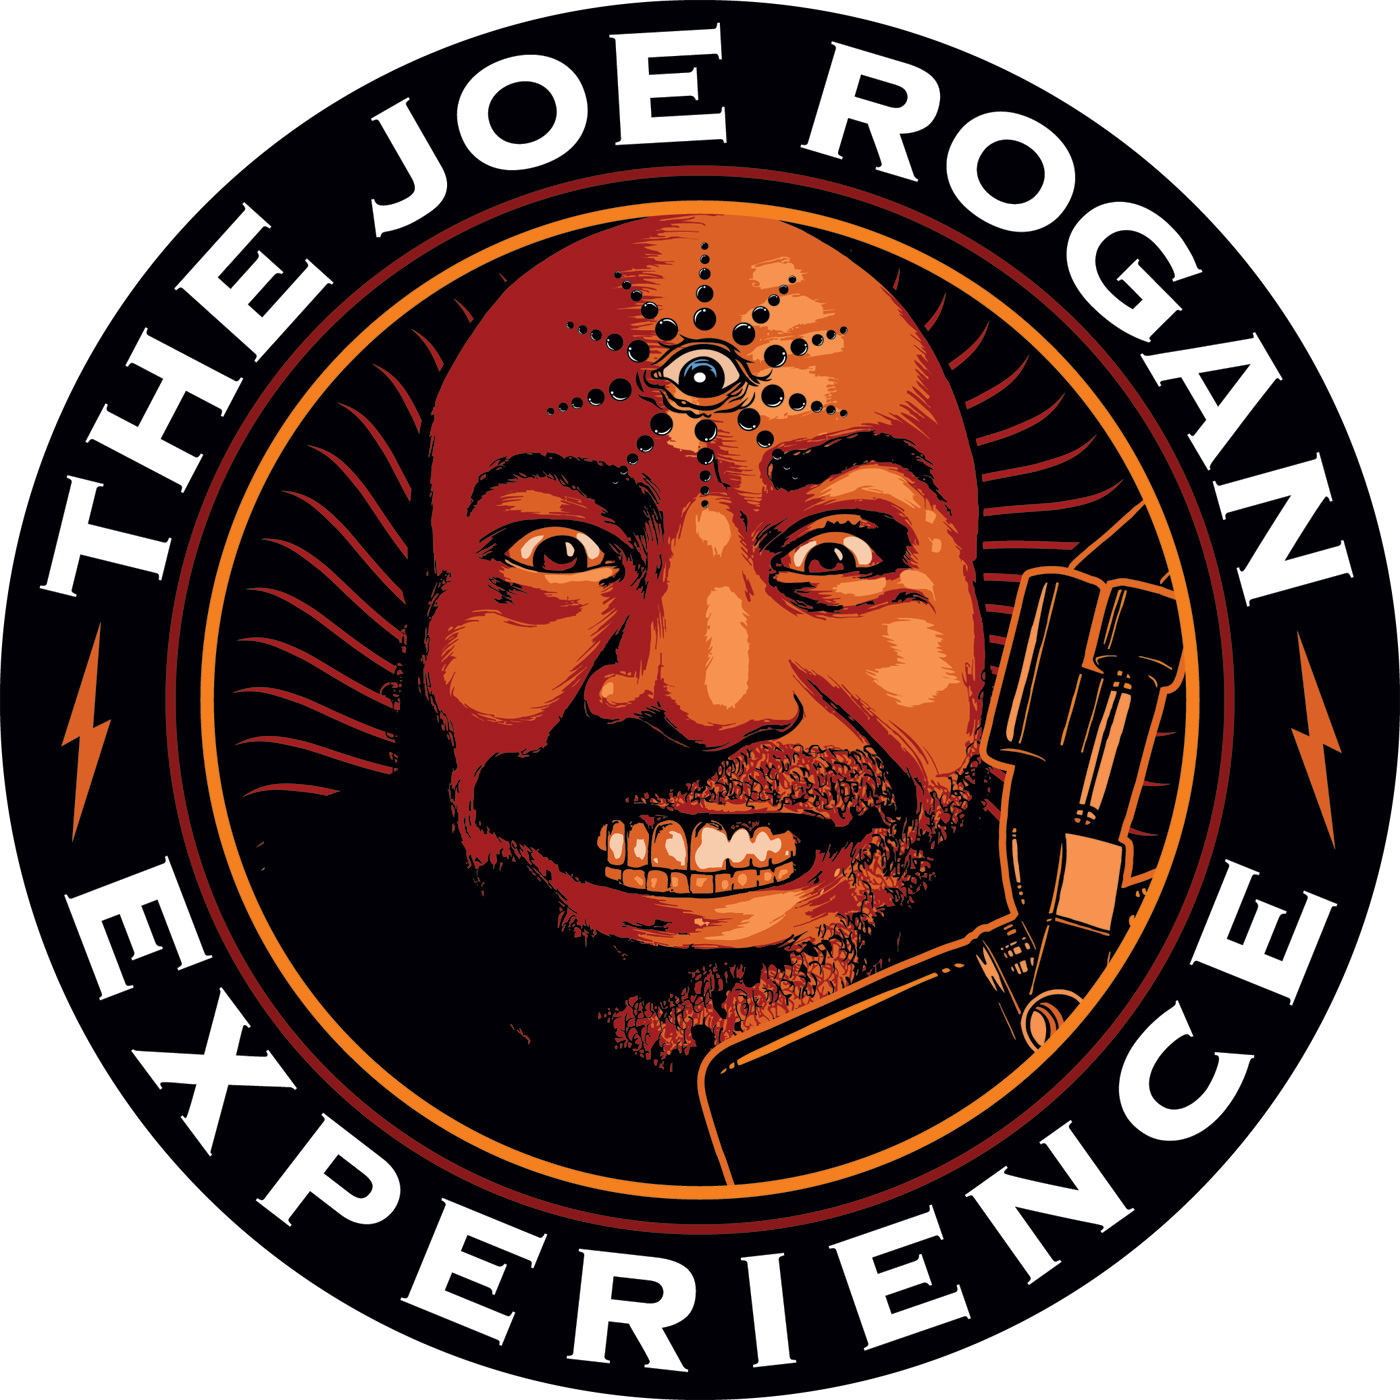 The Joe Rogan Experience PODCAST #130 - Duncan Trussell, Brian Redban